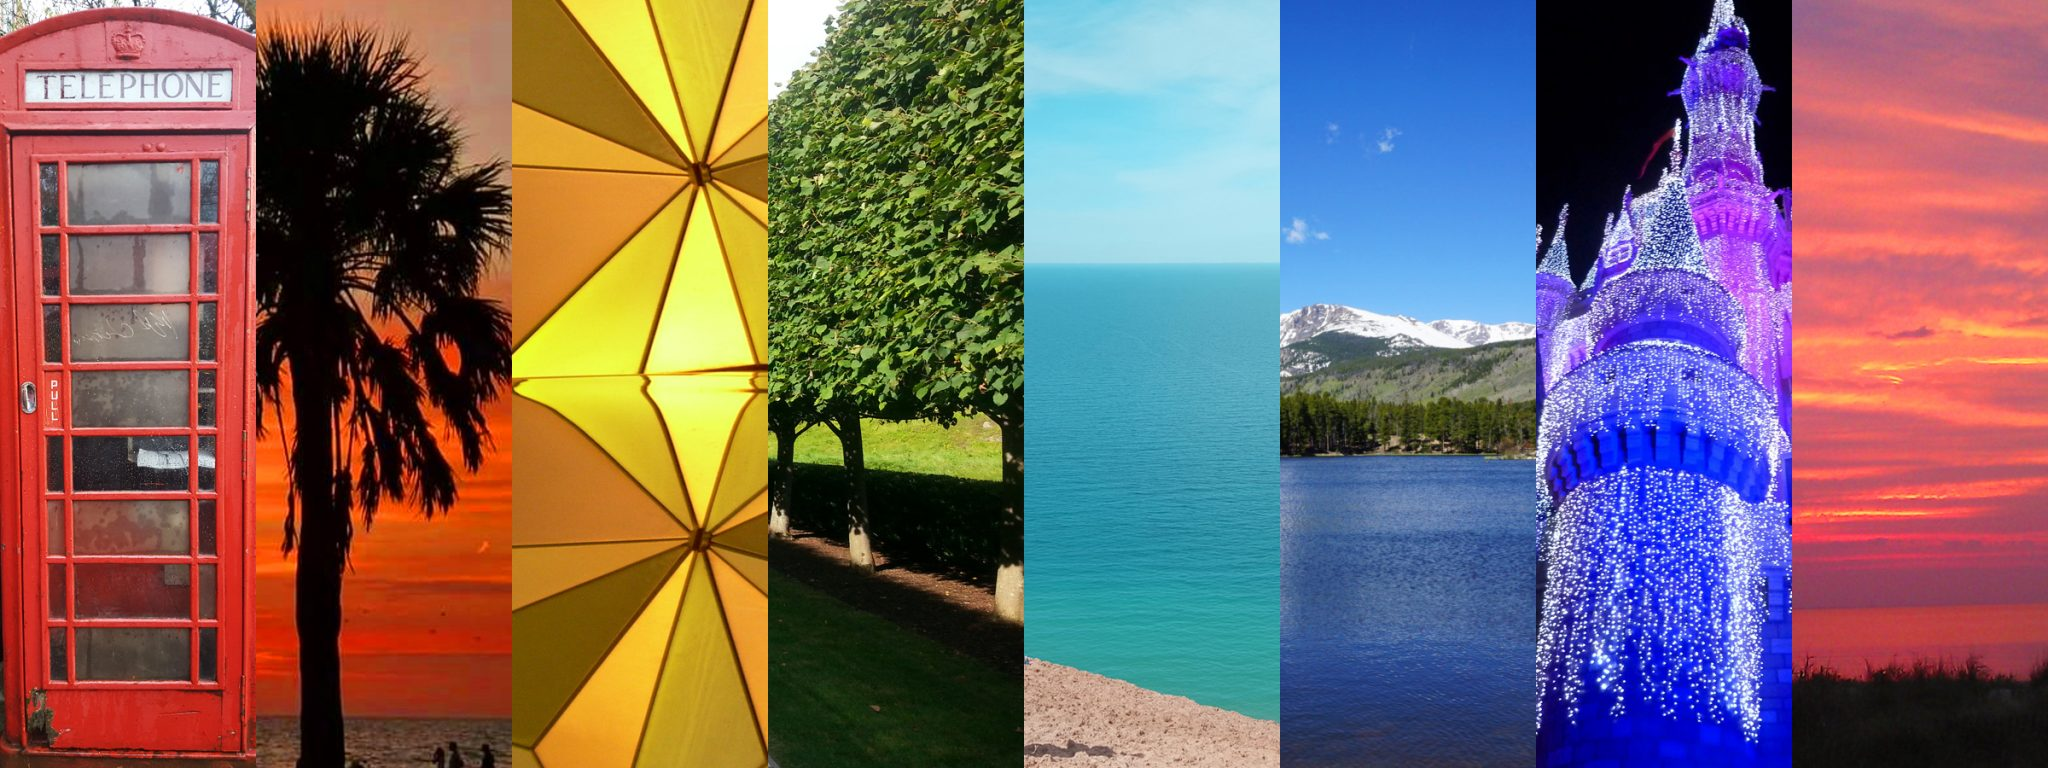 Colorful Instagram travel photos